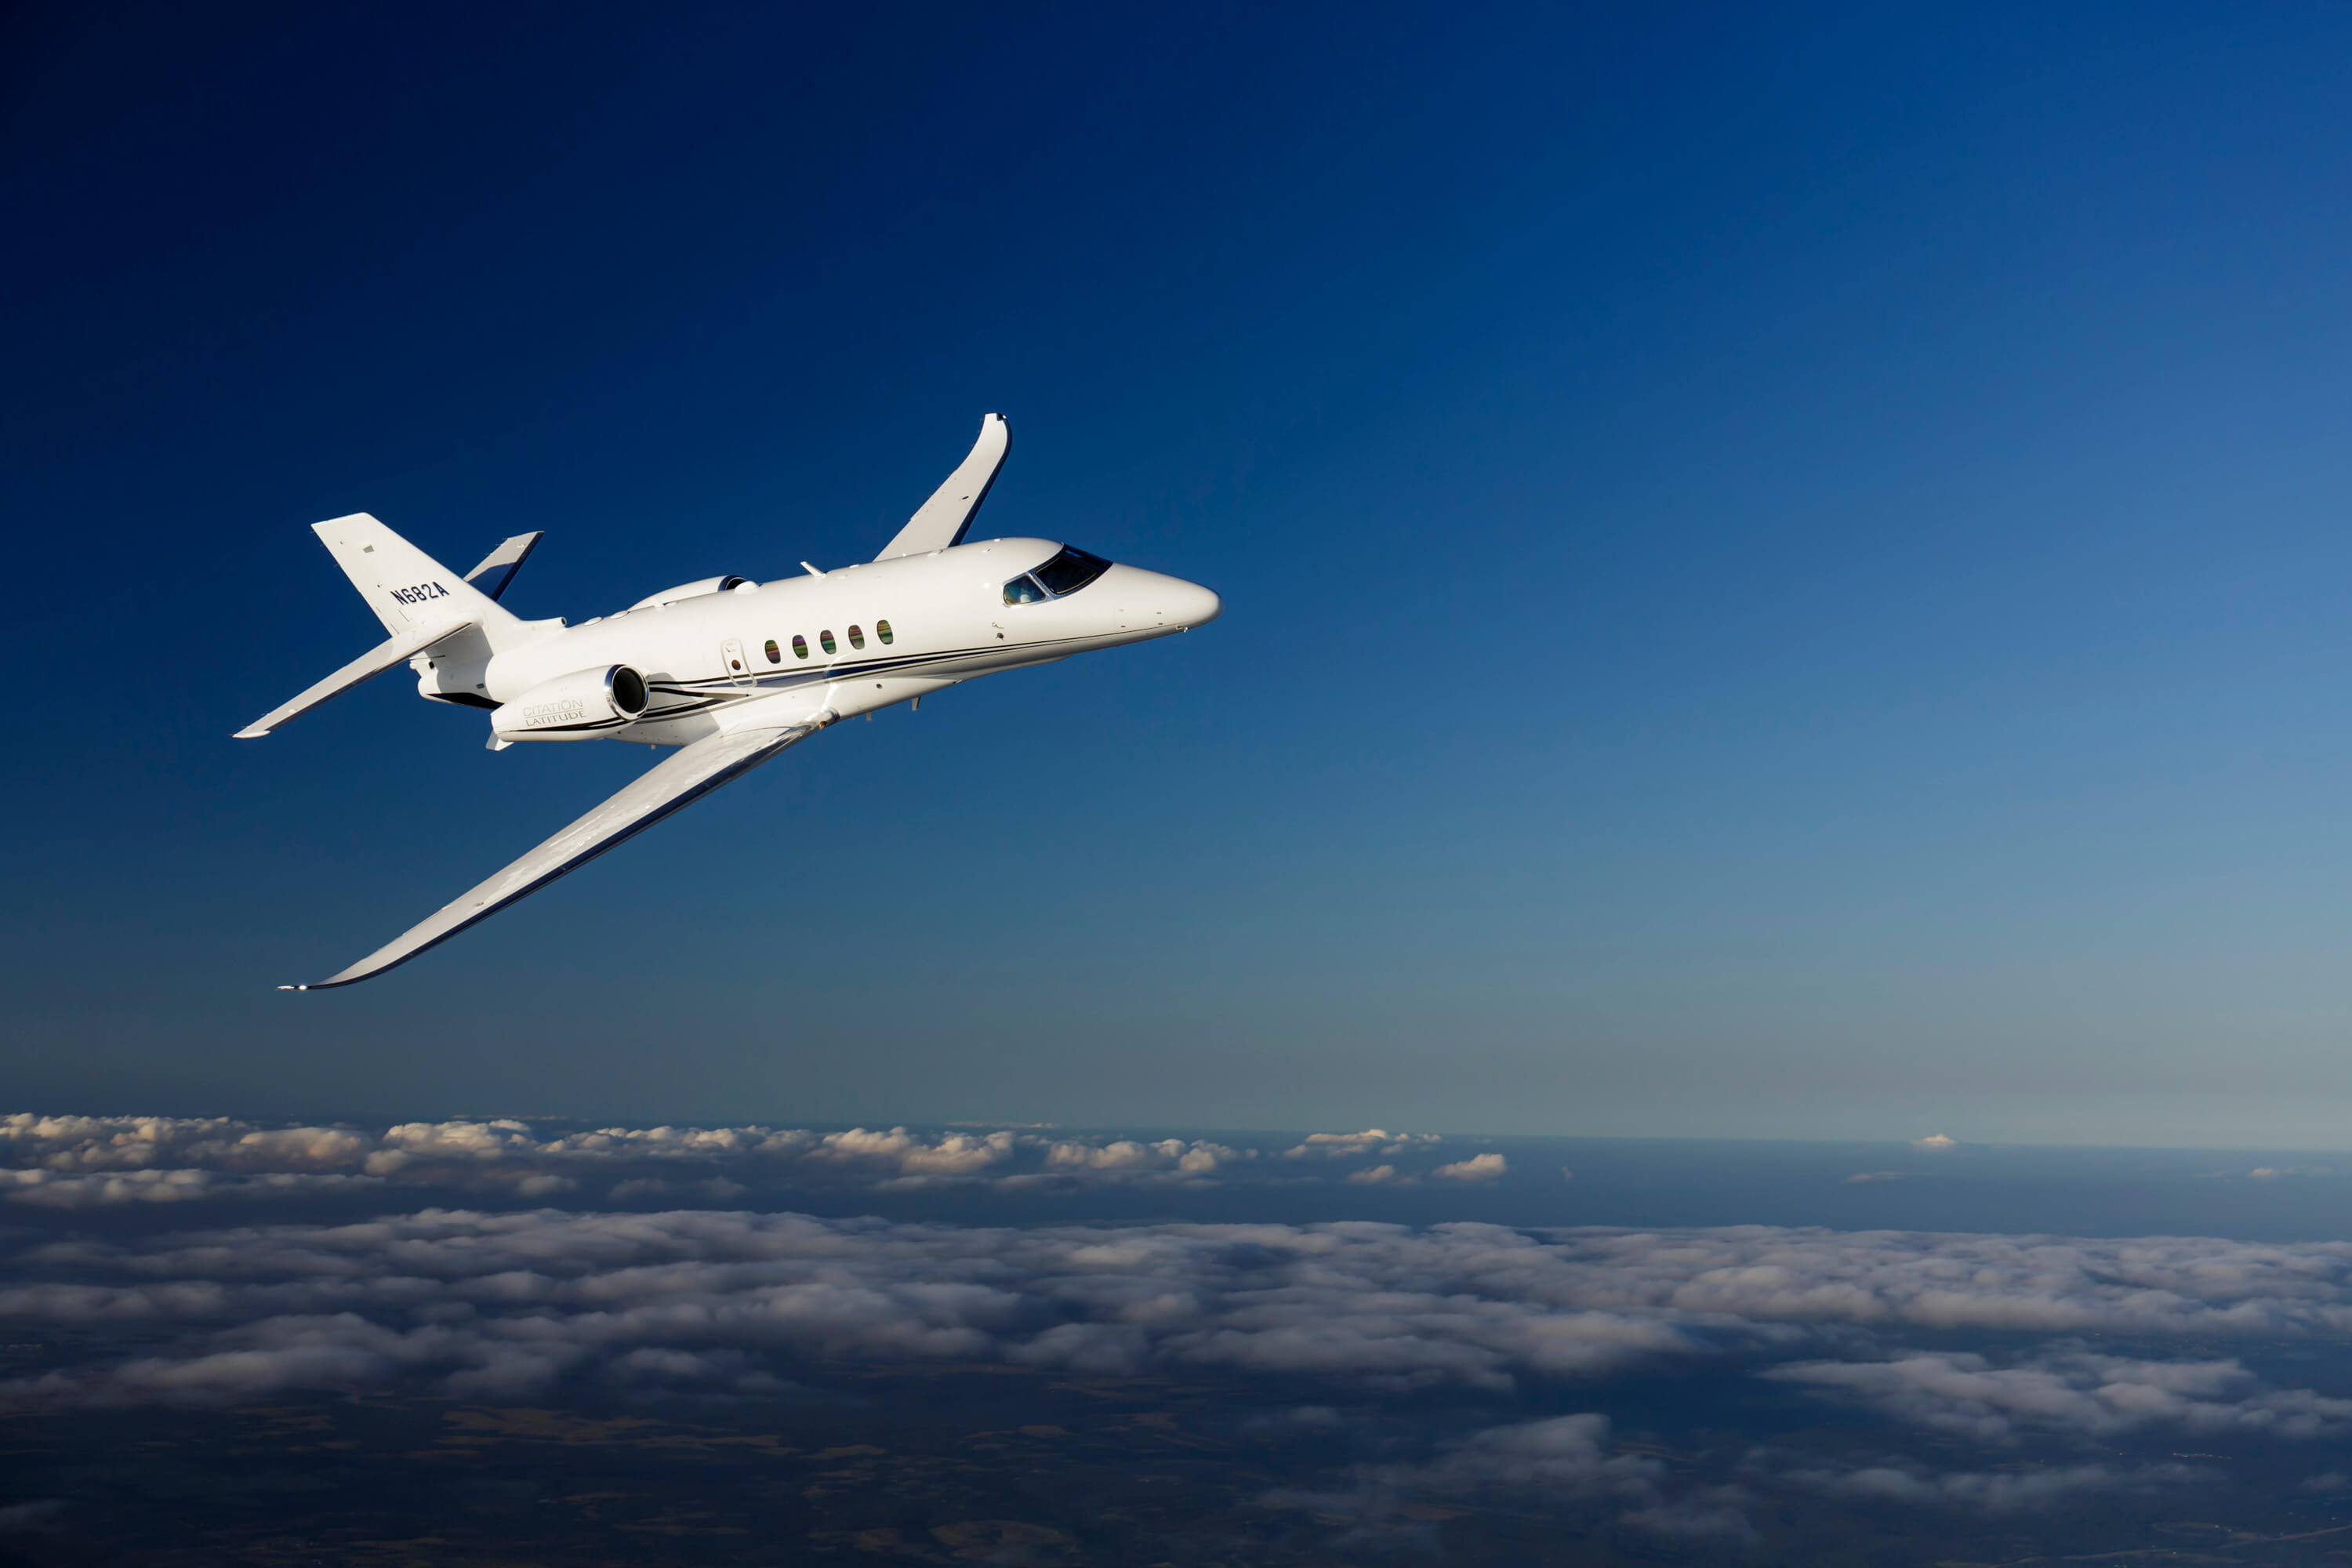 Citation Latitude in flight